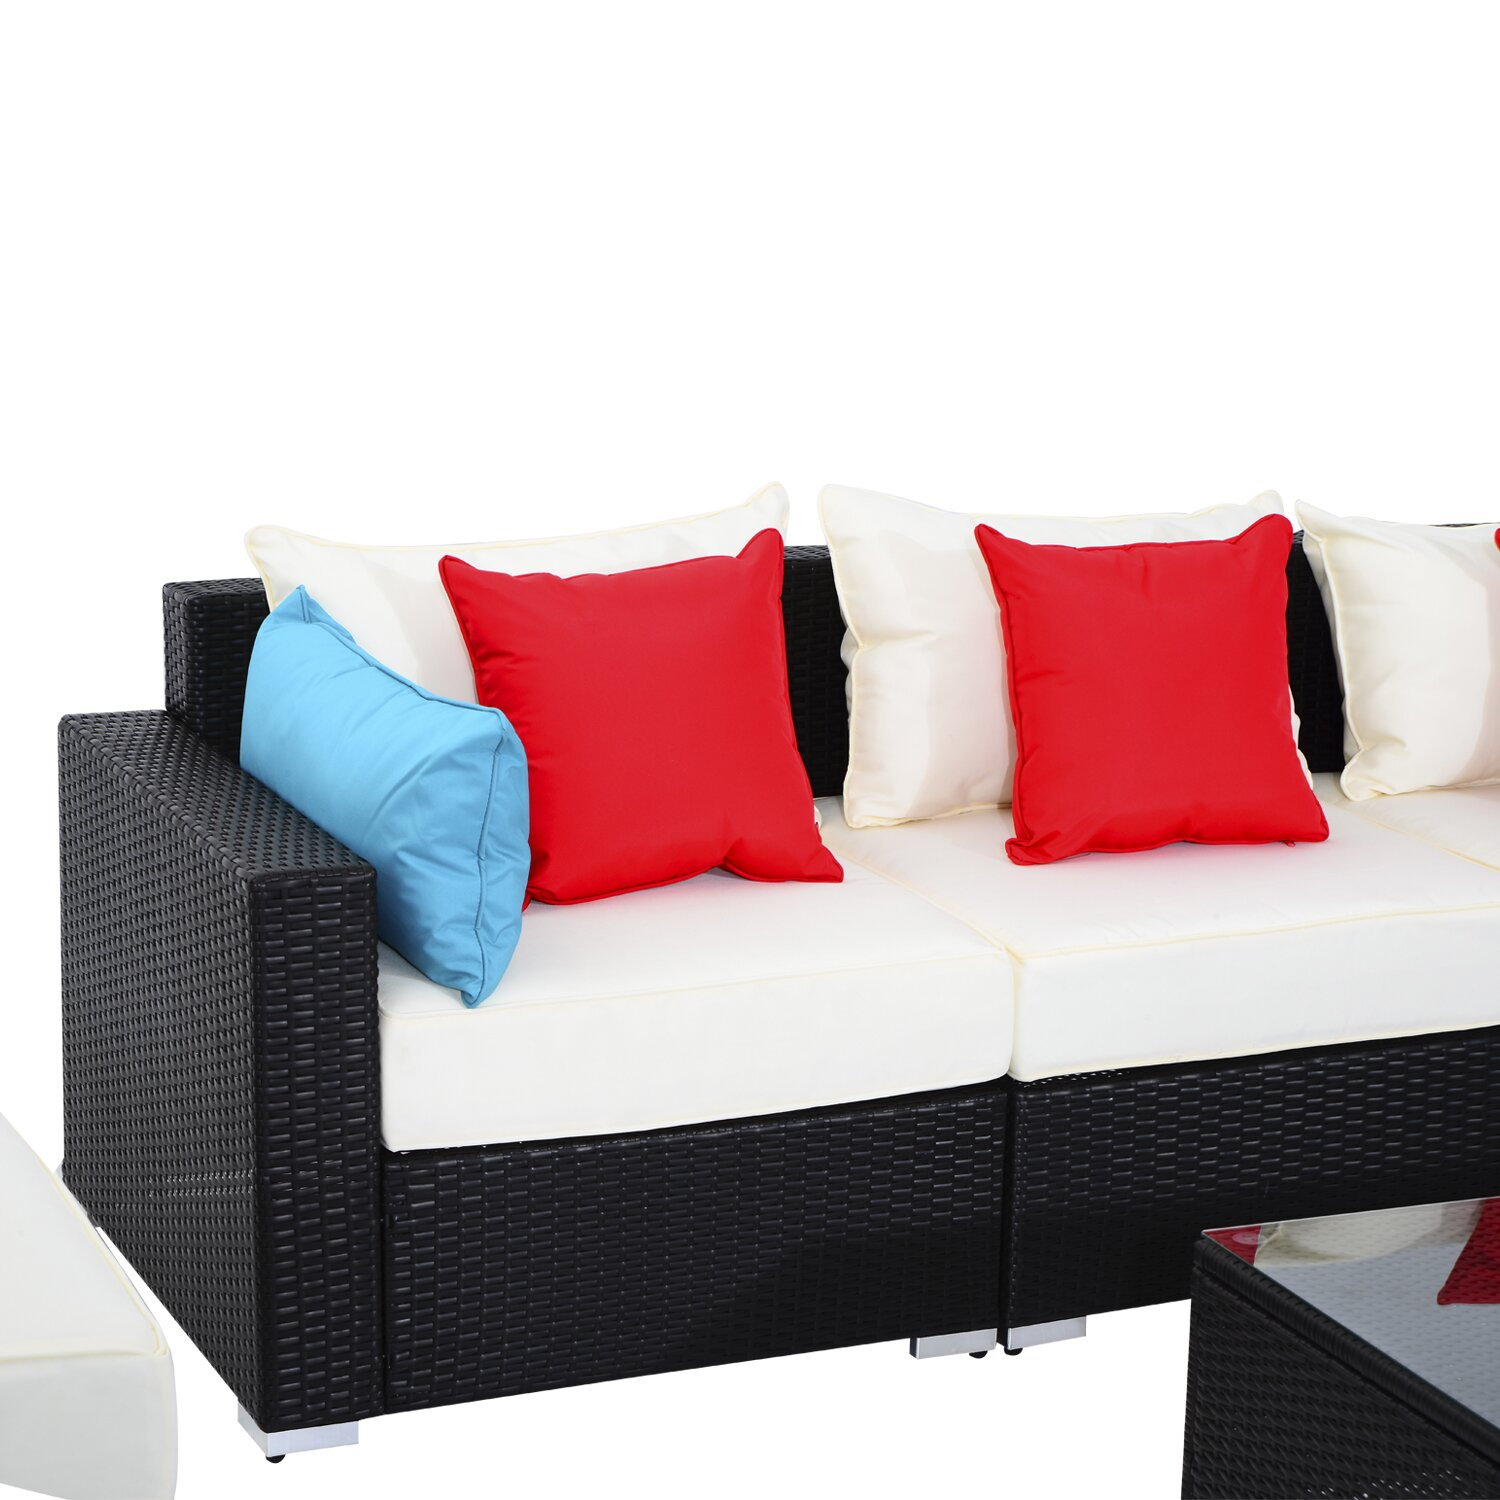 Sofa Protector Cover Images Leather Couch